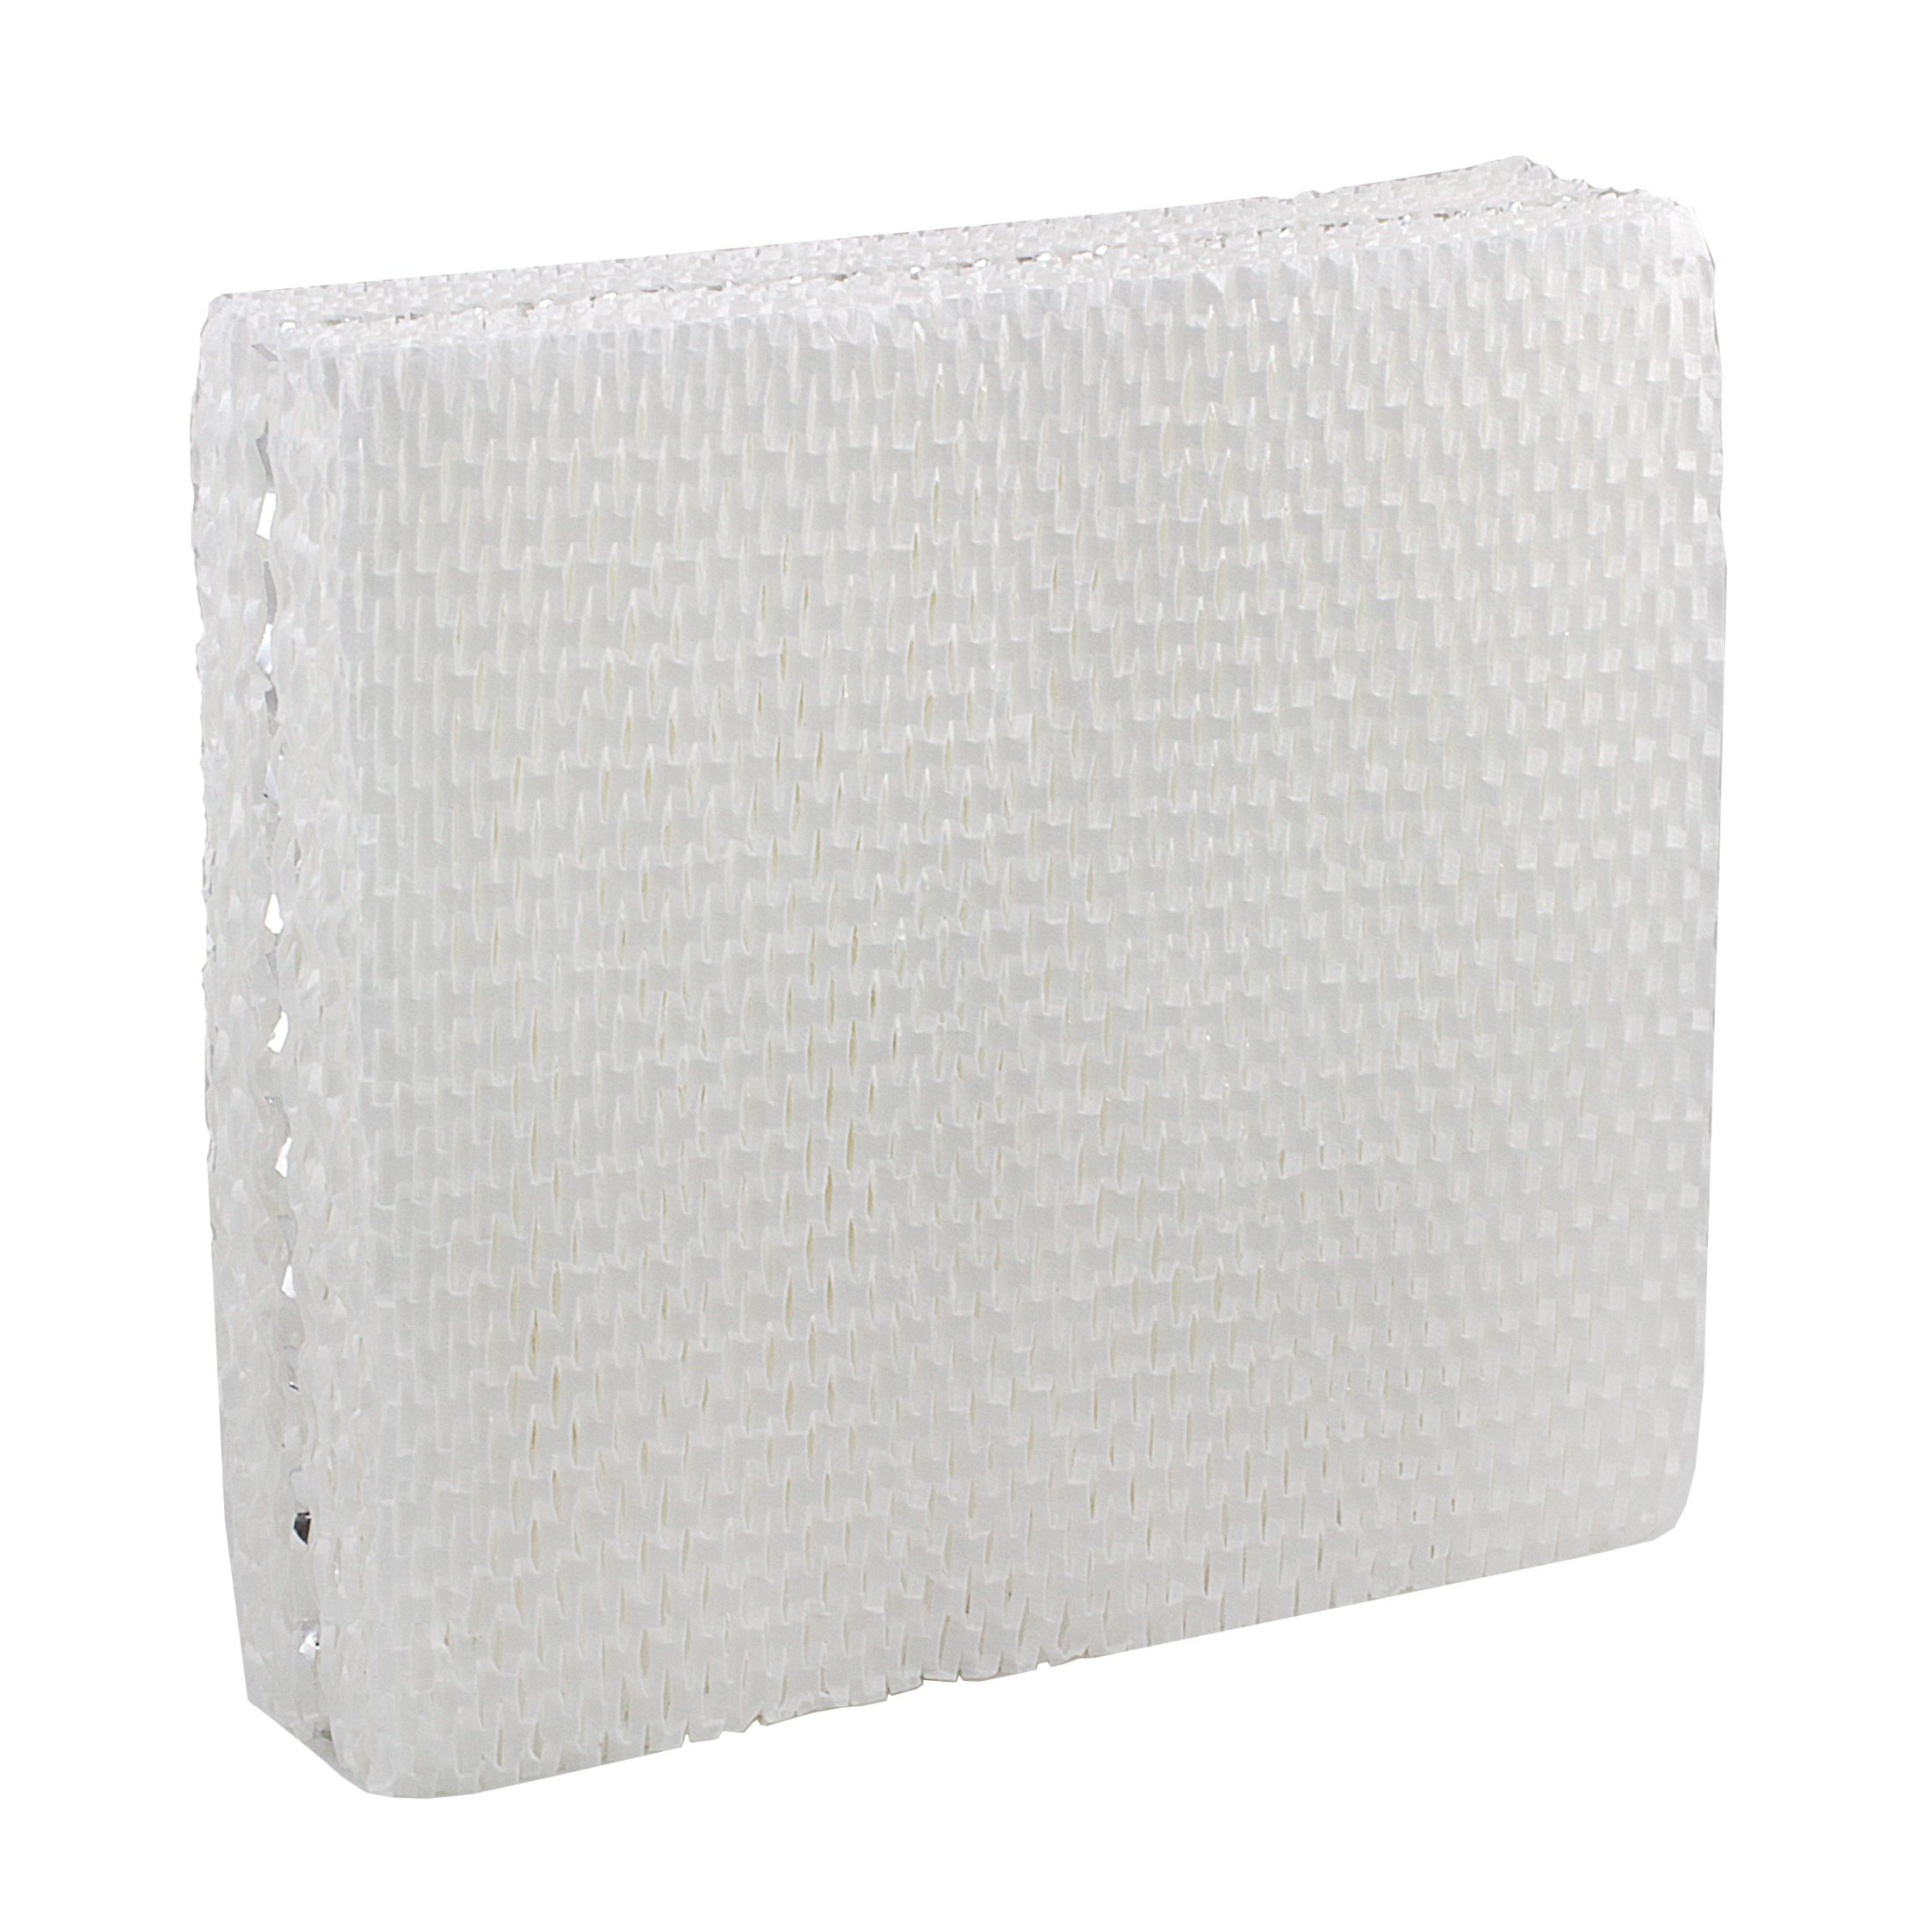 FilterBuy 4 Replacements Compatible with Lasko THF15, Duracraft AC-809 & AC-815, Sears Kenmore 14809 Humidifier Wick Filters. Designed by in the USA. by FilterBuy (Image #2)